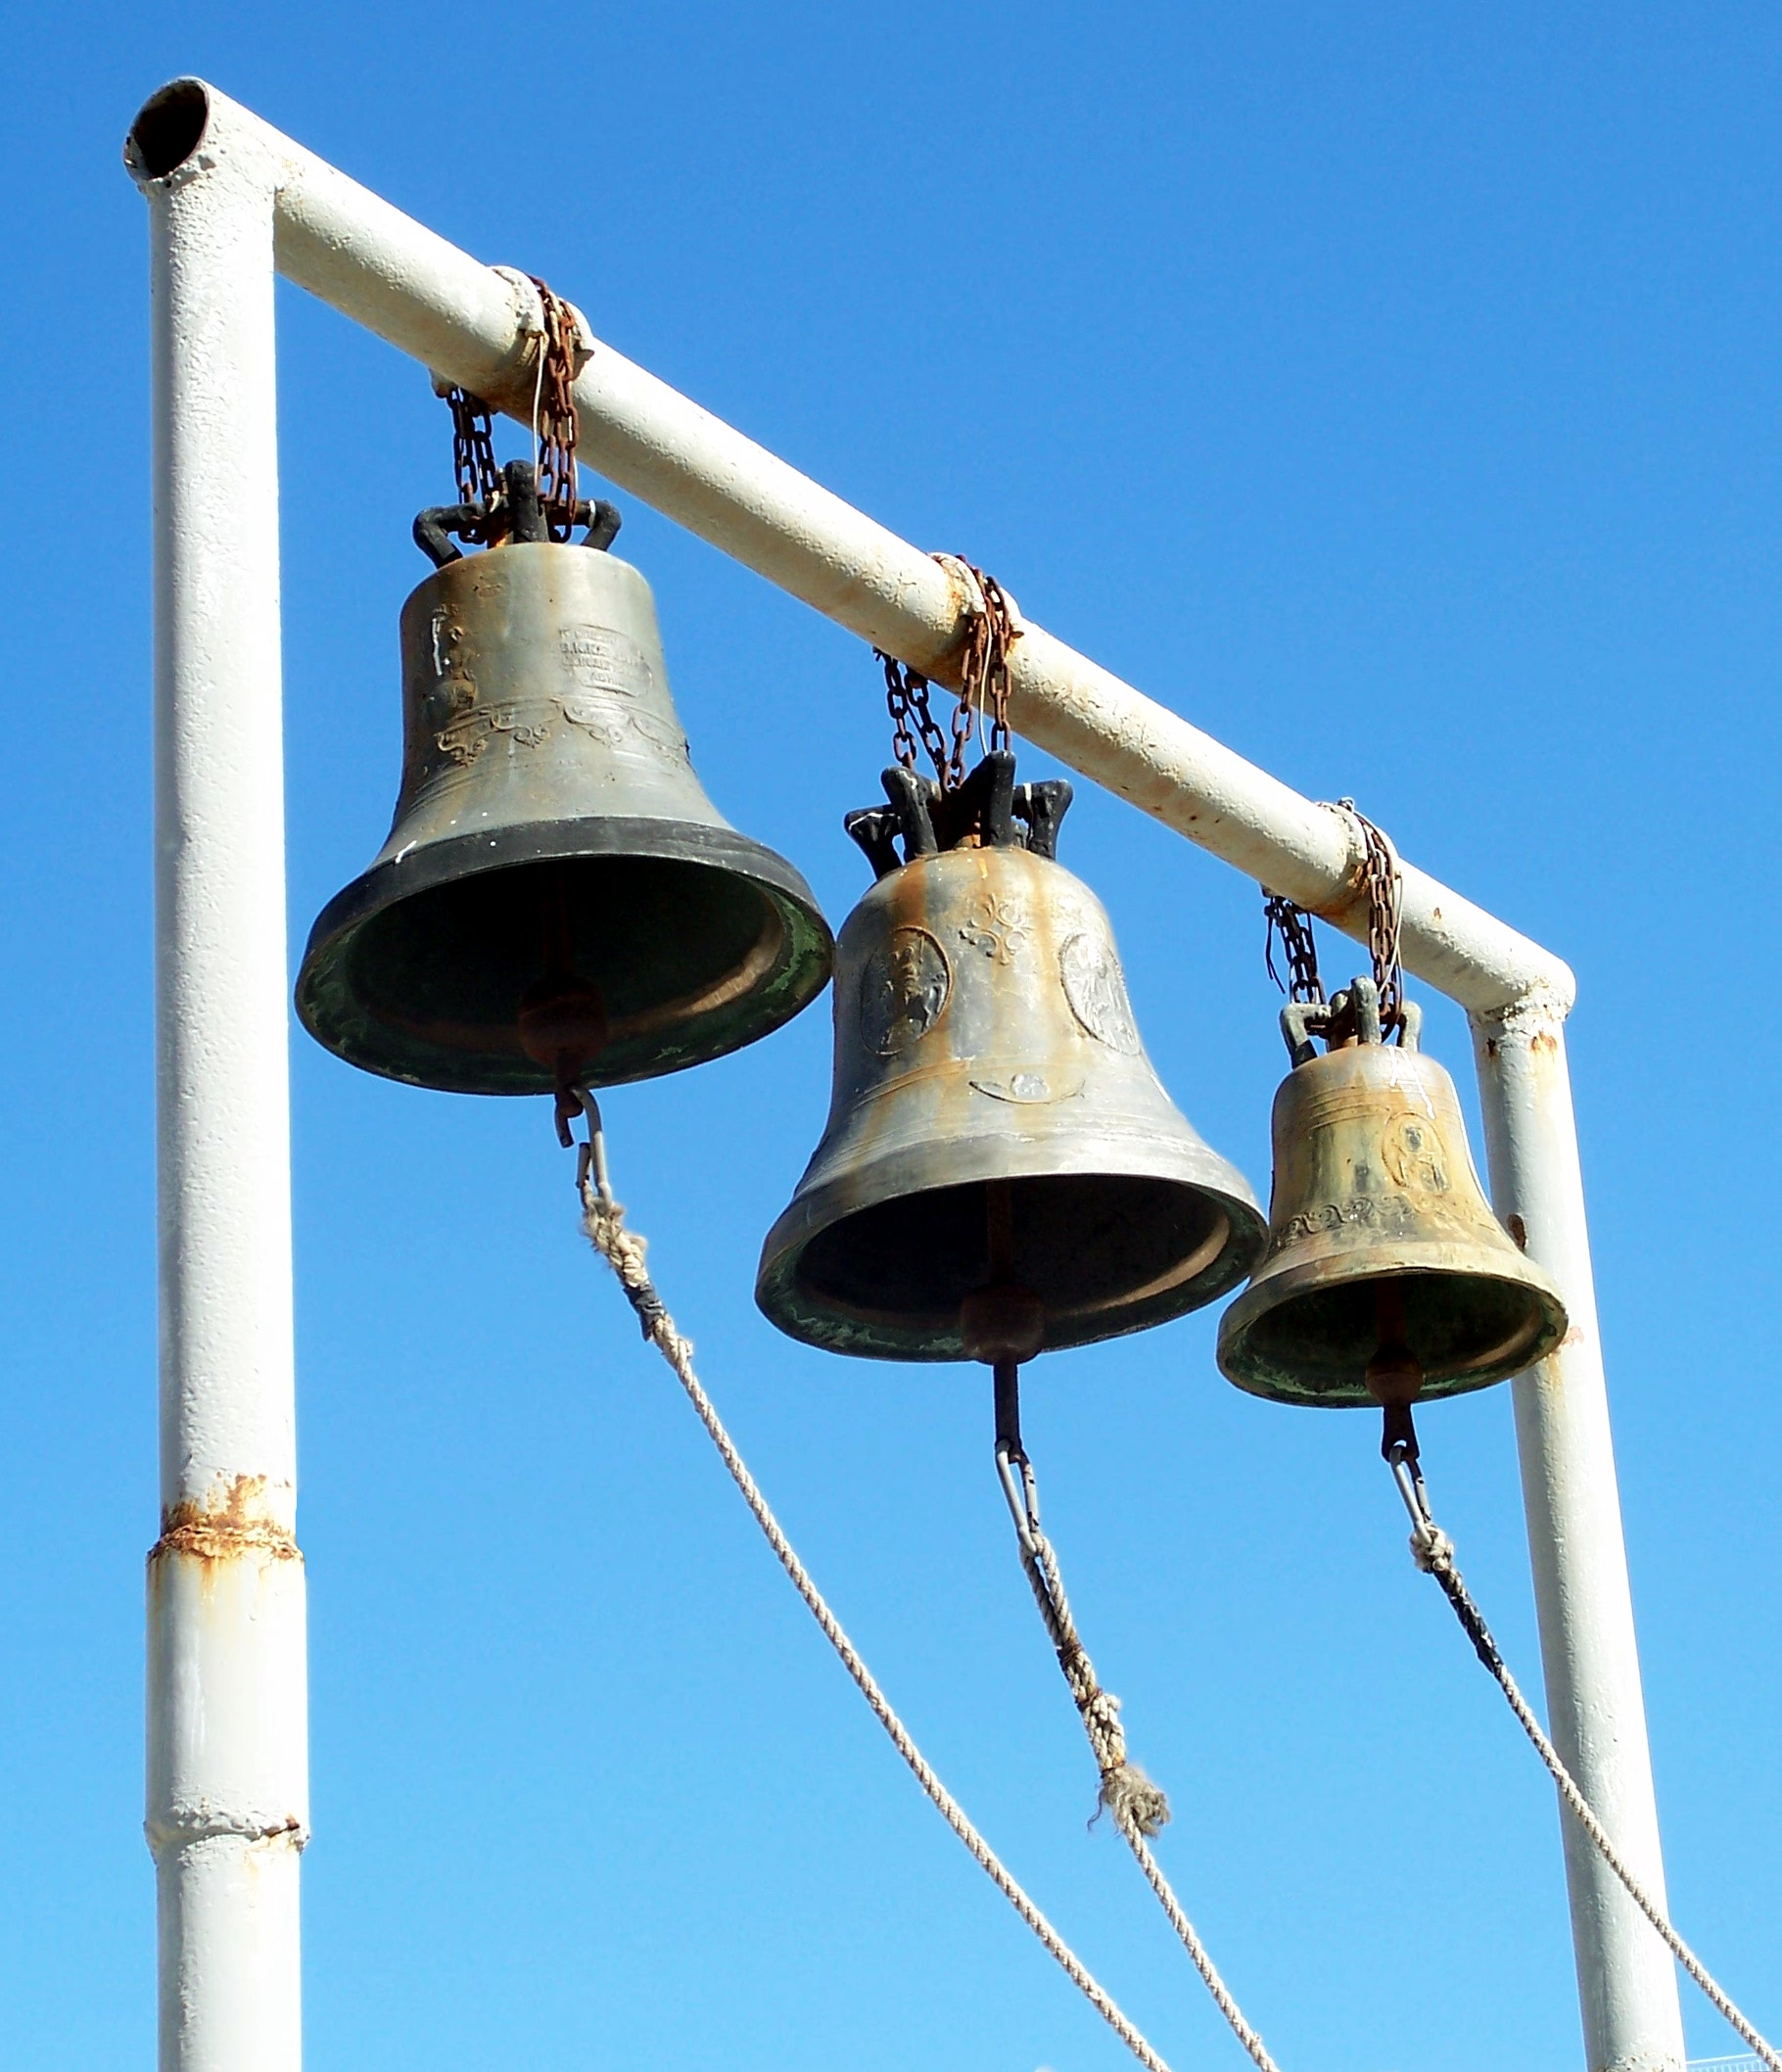 I hear the bells a-ringing – year-struck